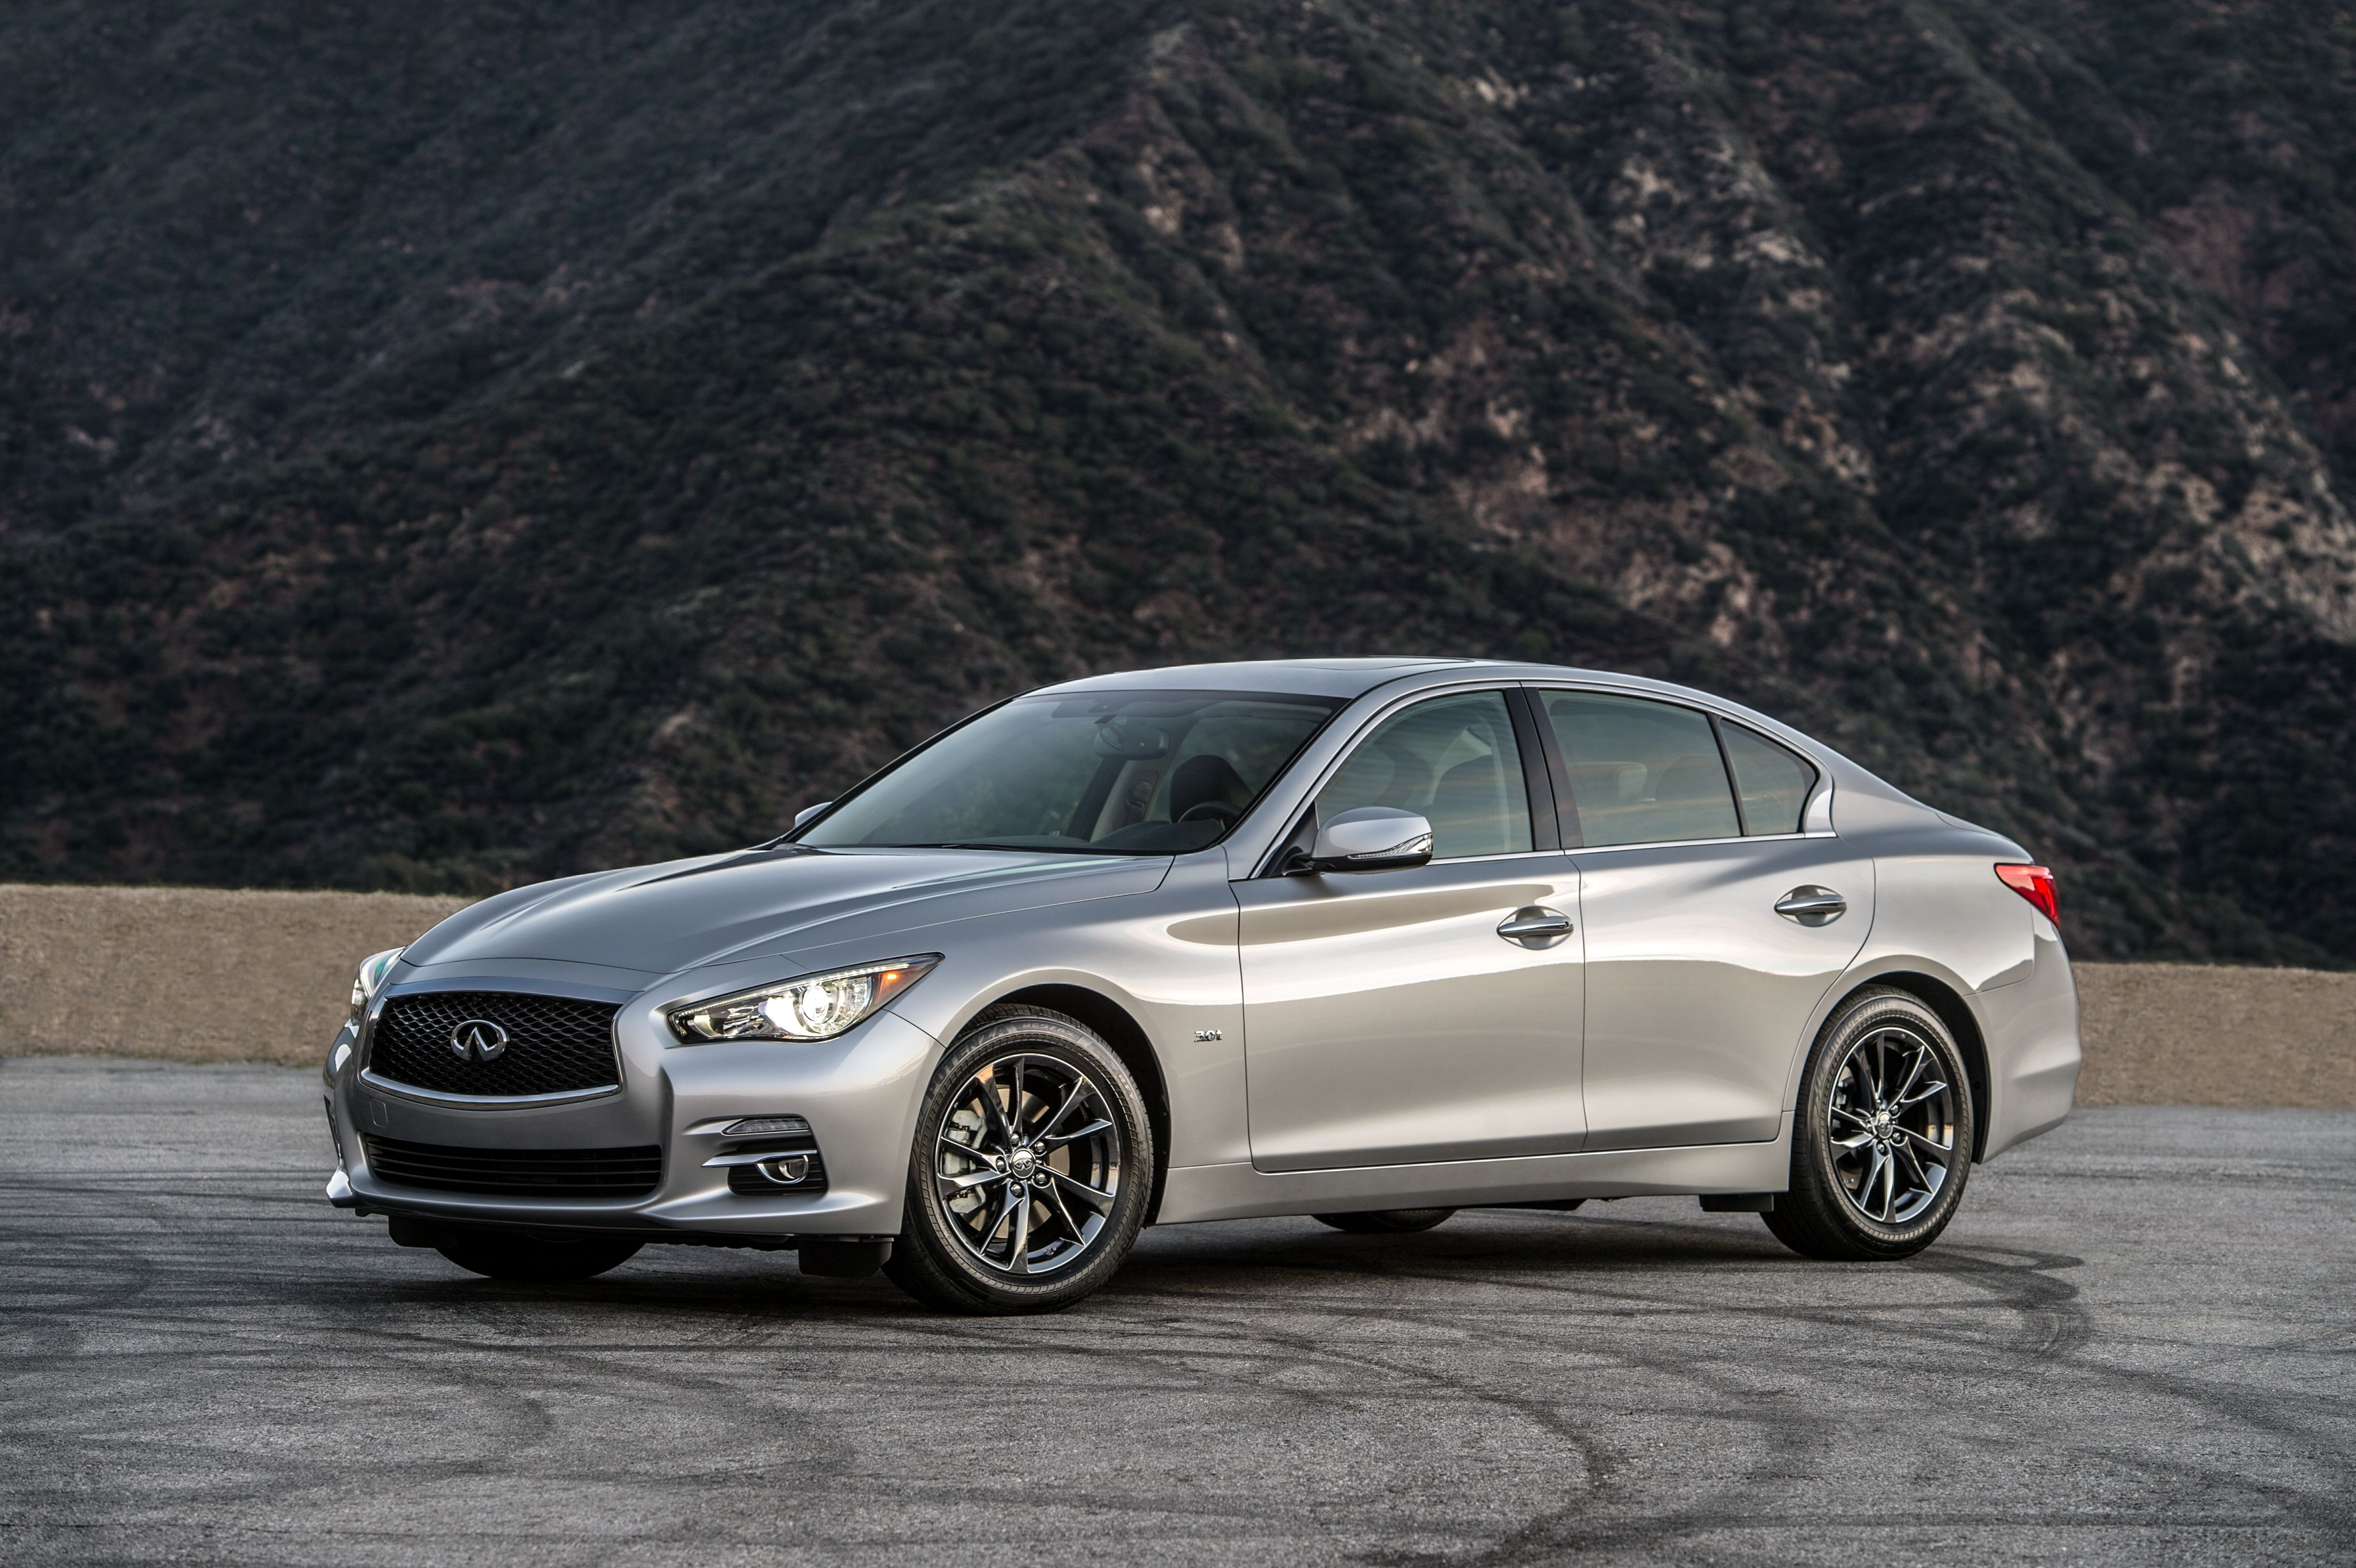 event dealers infiniti clearance inventory overview nj end review of infinity year dealer